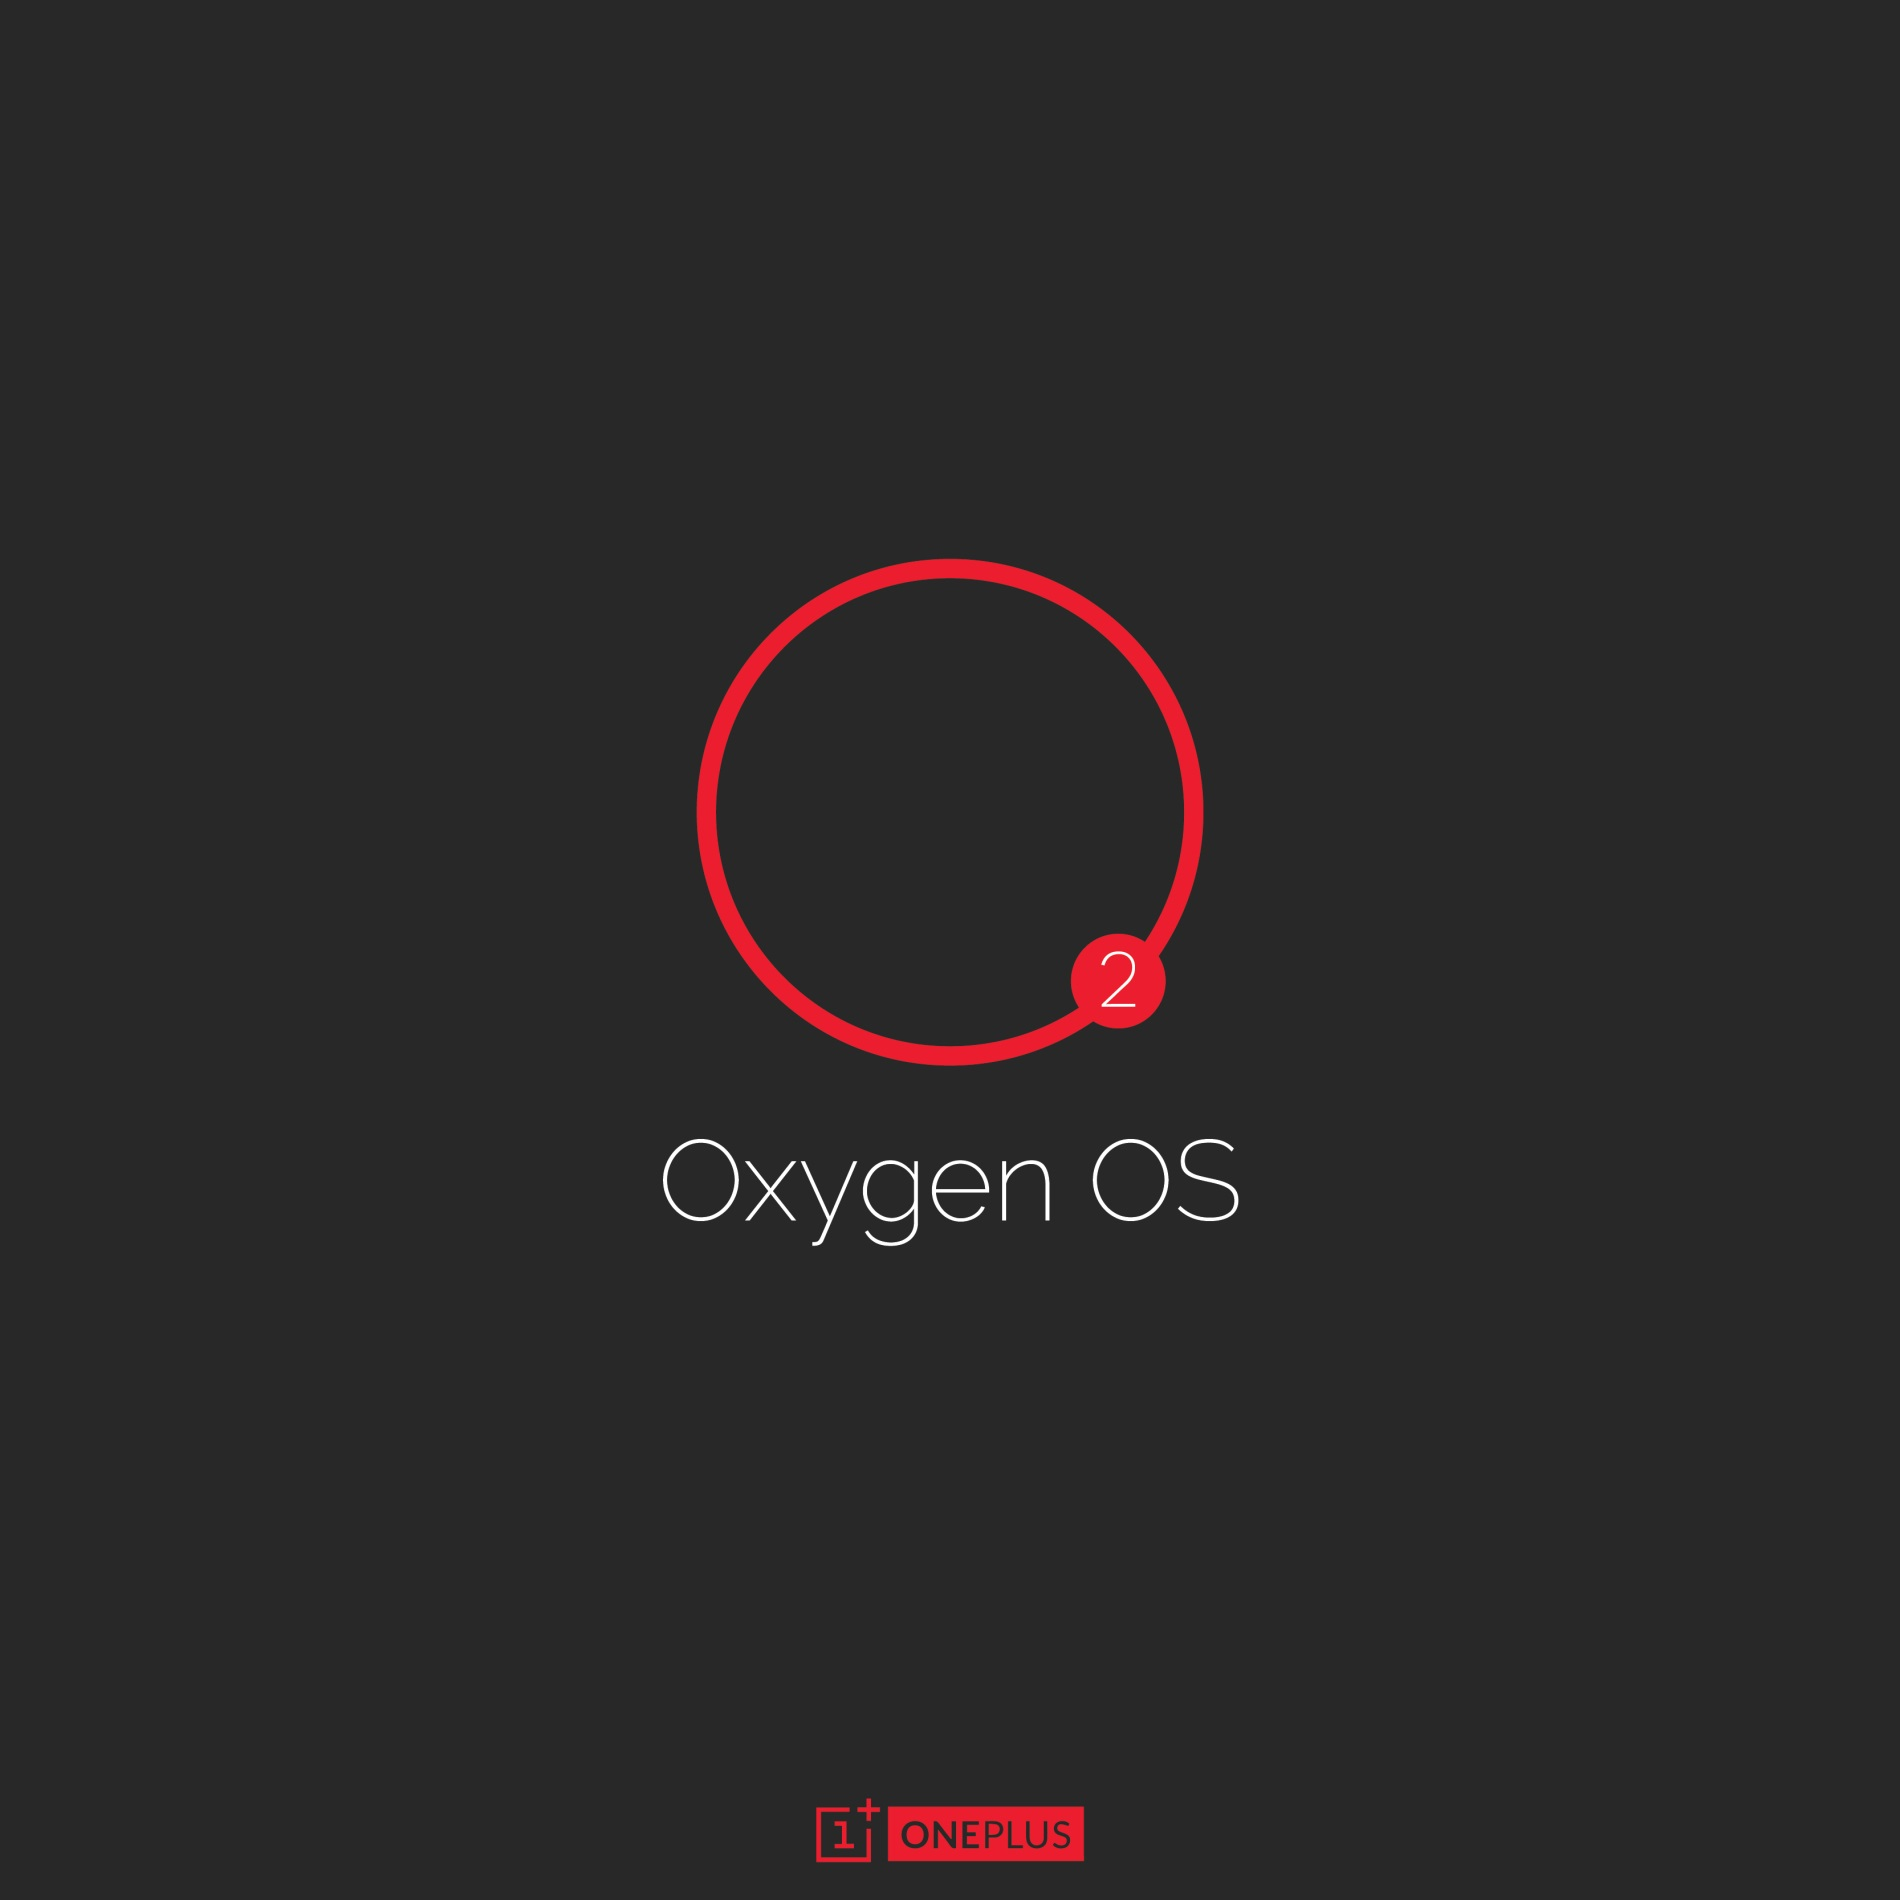 Oxygen periodic table facts choice image periodic table images oxygen facts periodic table image collections periodic table images oxygen periodic table facts image collections periodic gamestrikefo Images